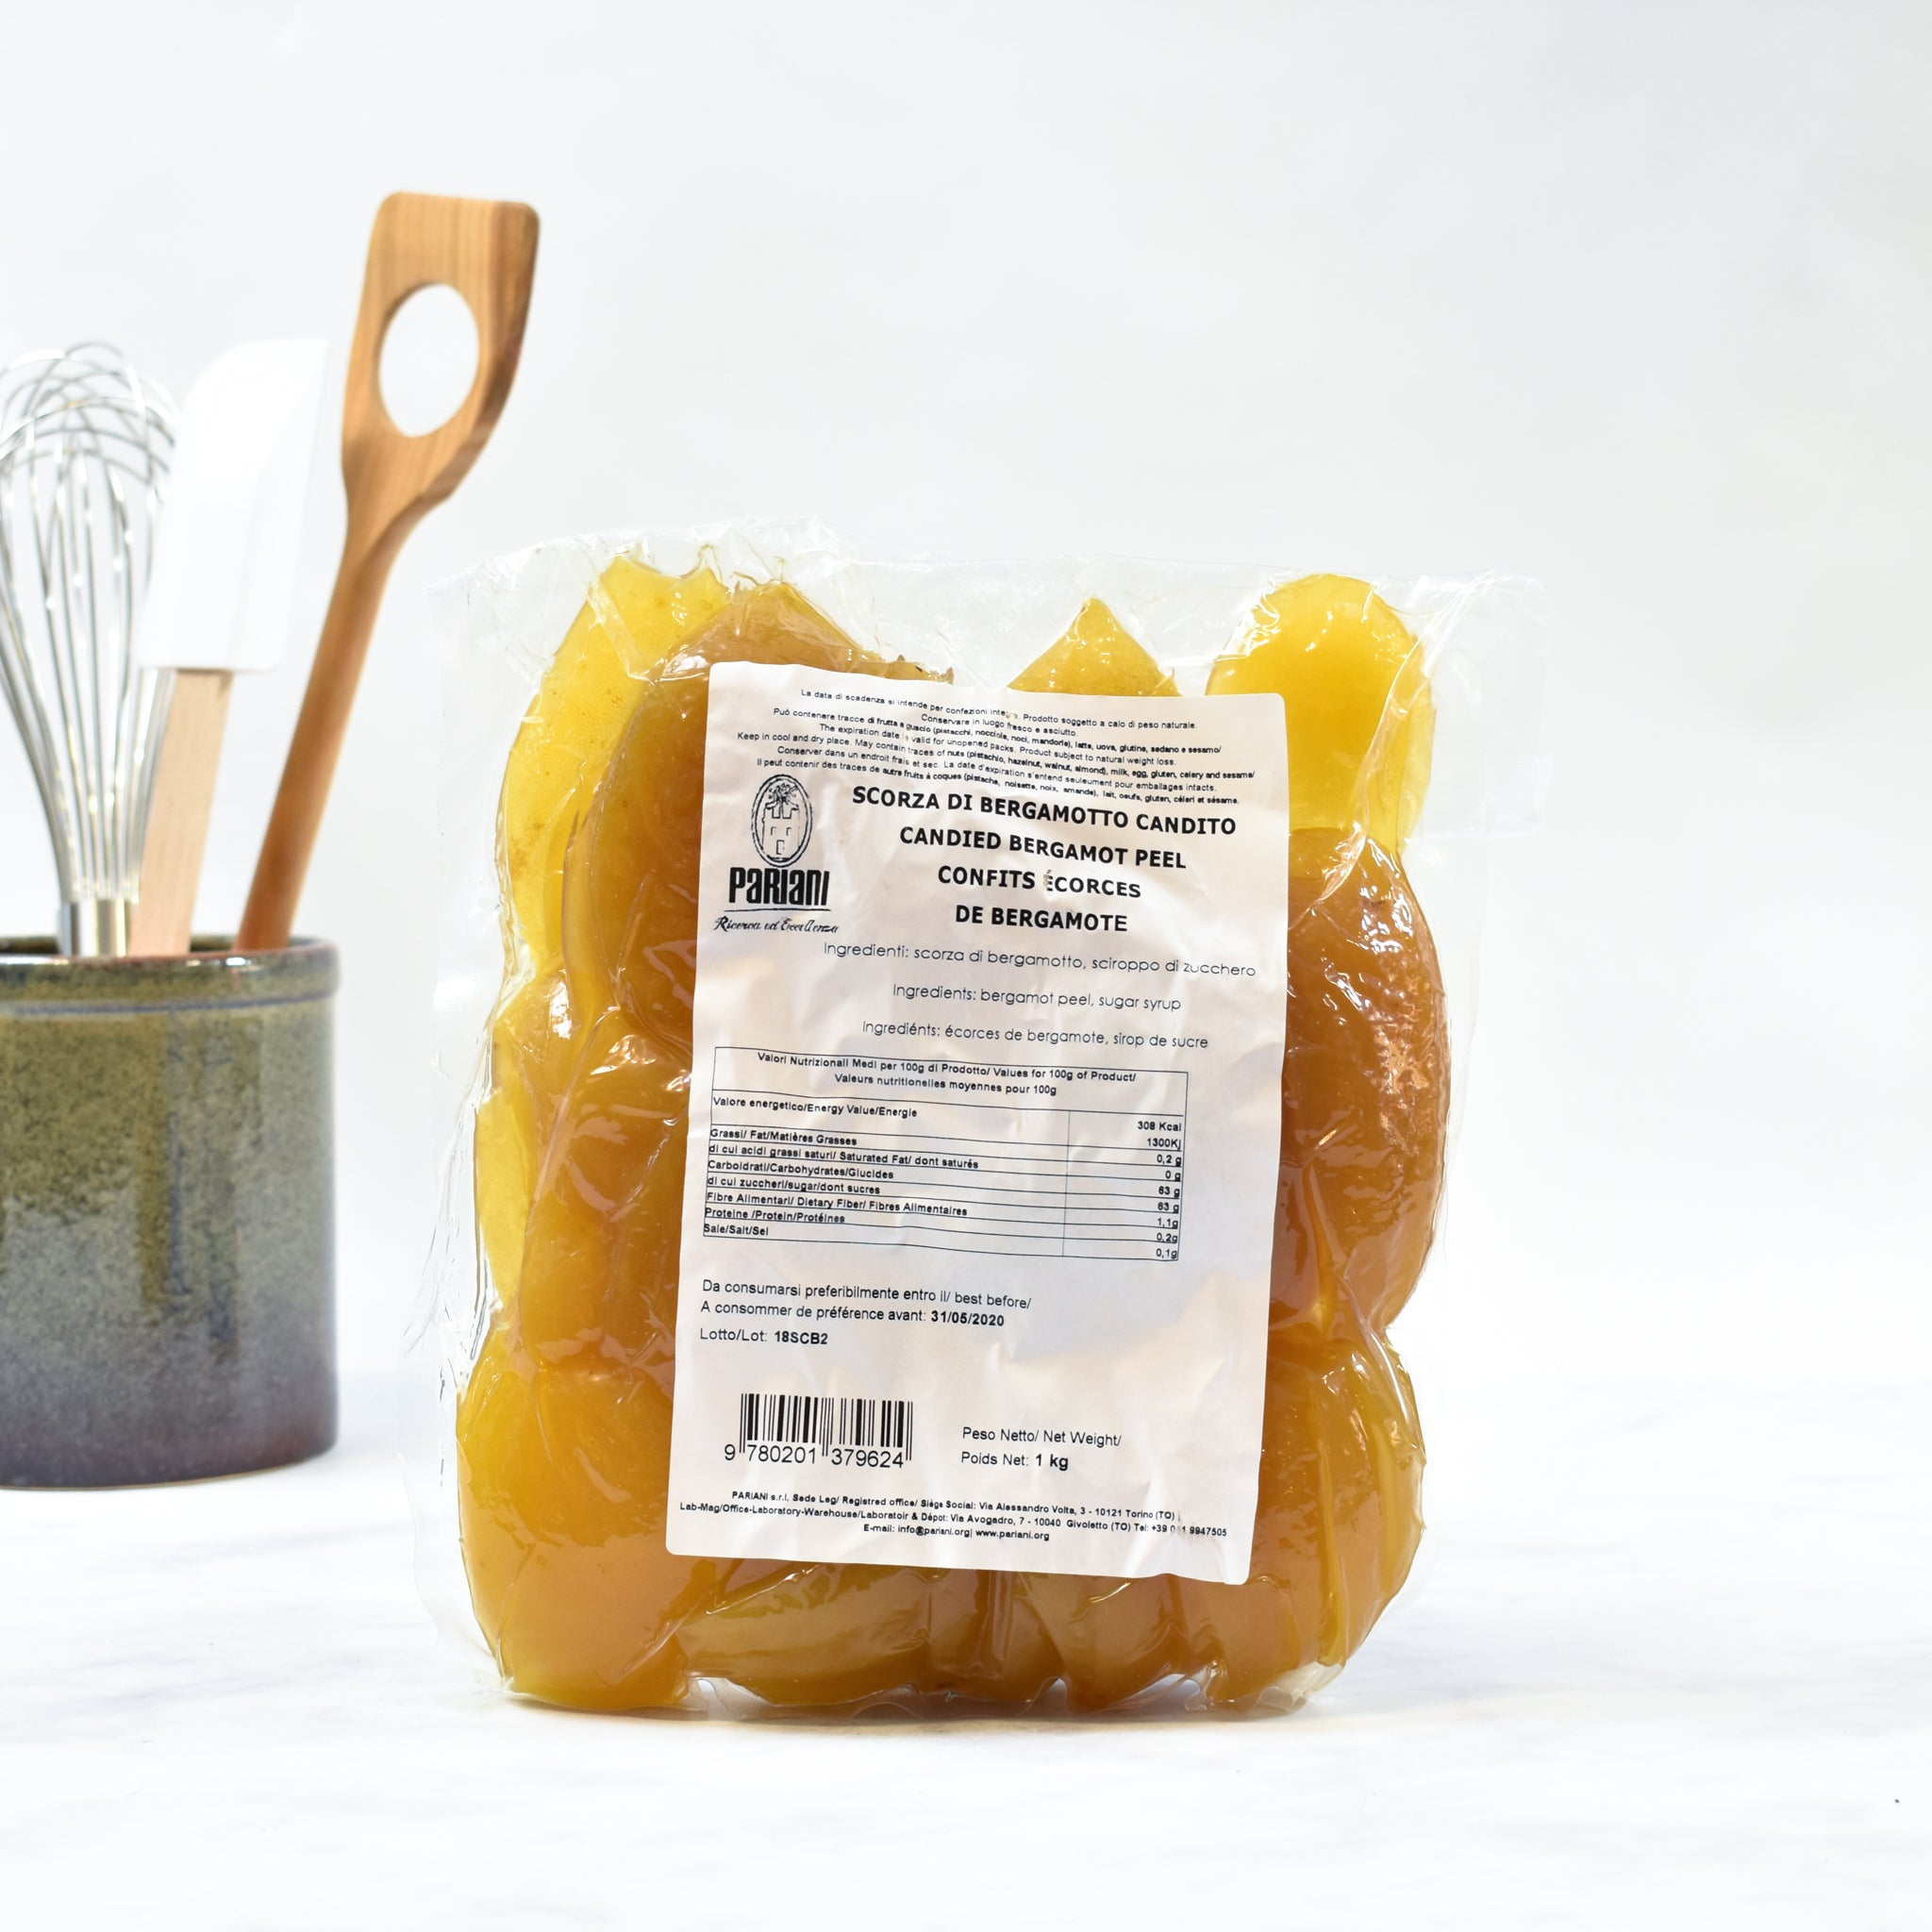 Calabrian Candied Bergamot Peel